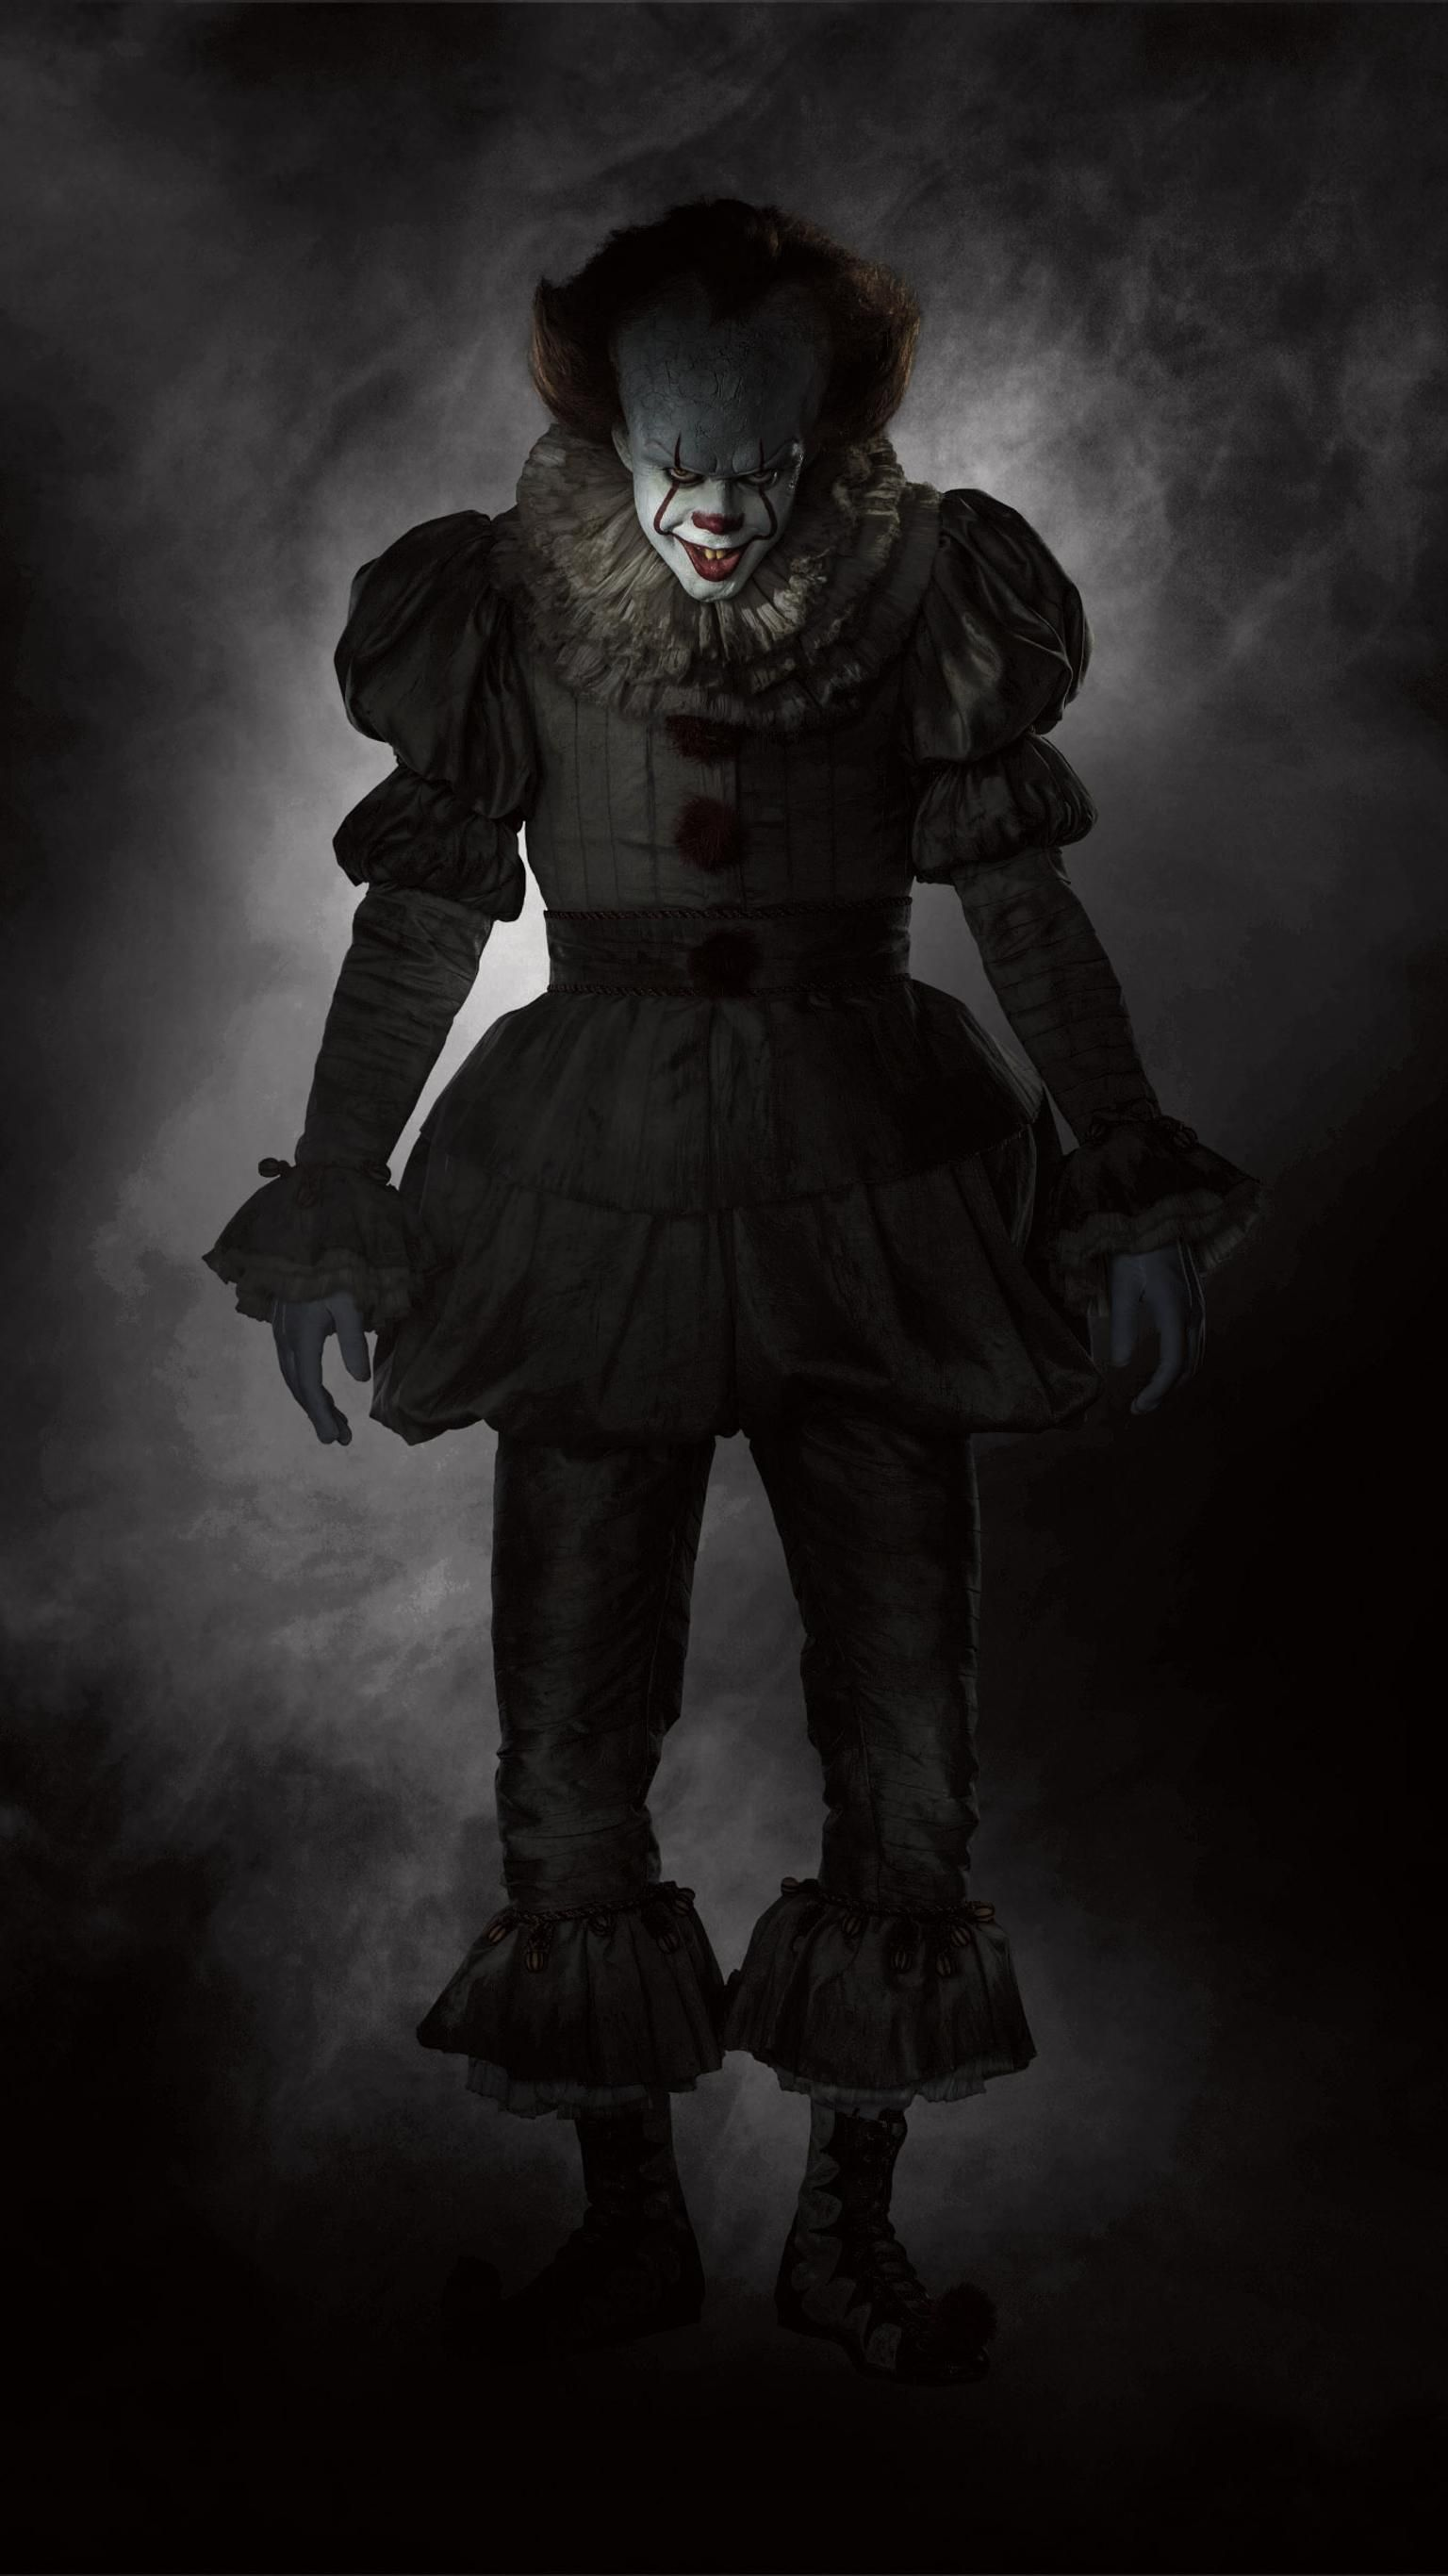 Pennywise the clown iphone wallpapers top free pennywise - Scary wallpaper iphone ...